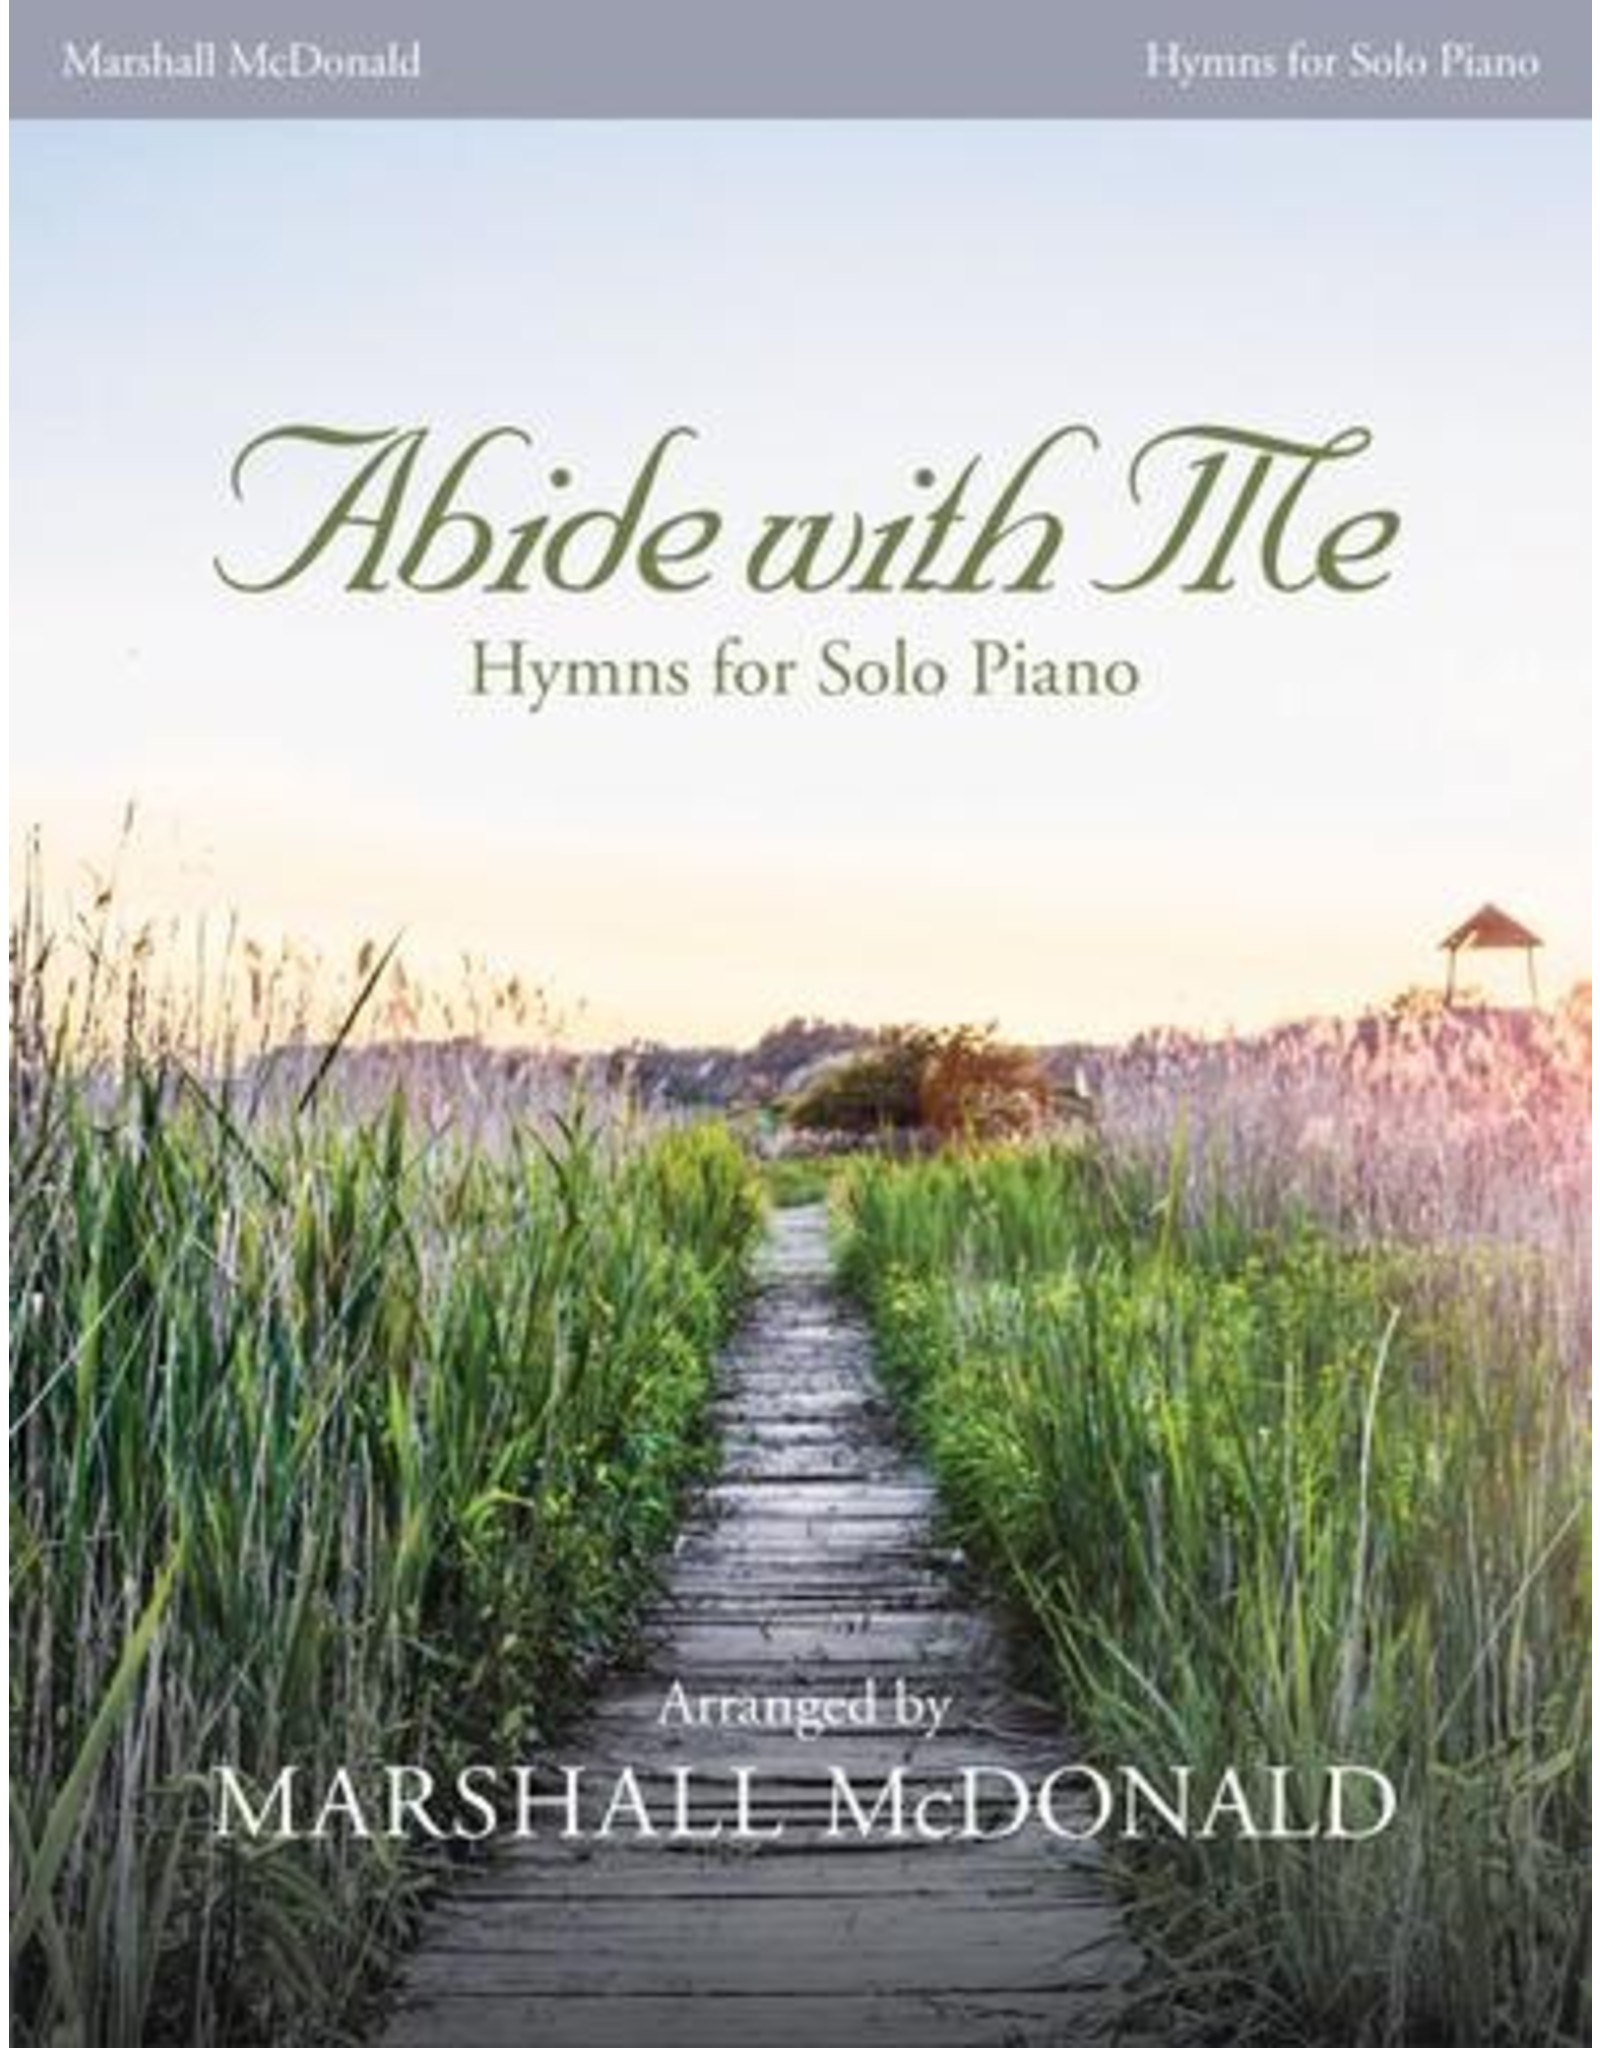 Marshall McDonald Music Abide With Me Hymns for Solo Piano by Marshall McDonald